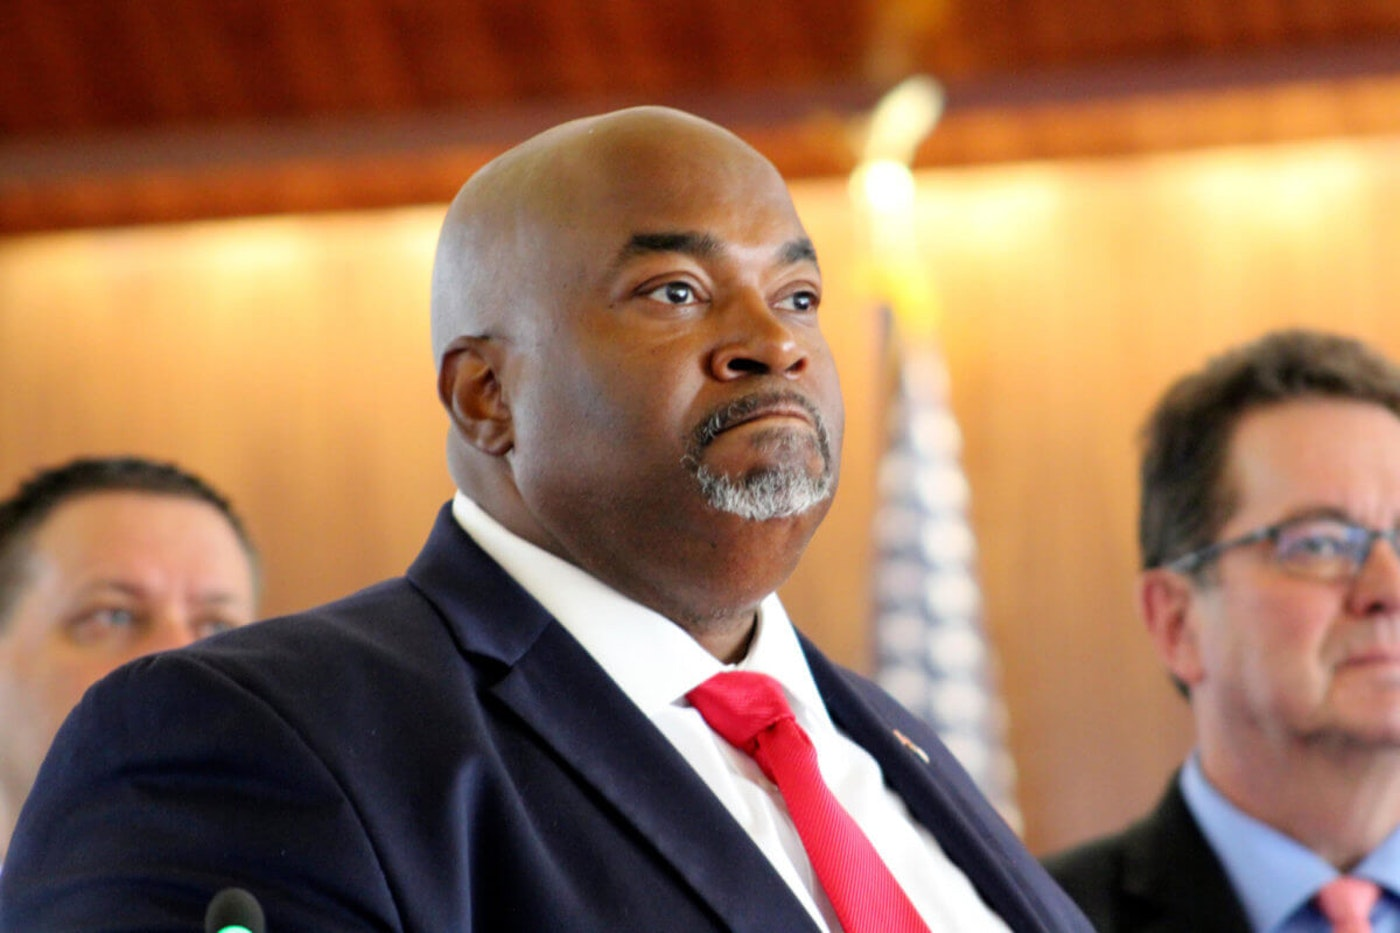 """North Carolina Republican Lt. Gov. Mark Robinson speaks Tuesday, Aug. 24, 2021, in Raleigh, N.C. Robinson is facing calls to resign from elected officials and LGBTQ advocacy groups over comments he made in June in which he criticized teachings in K-12 public schools and likened peoples' sexual orientation to """"filth."""" (AP Photo/Bryan Anderson, file)"""